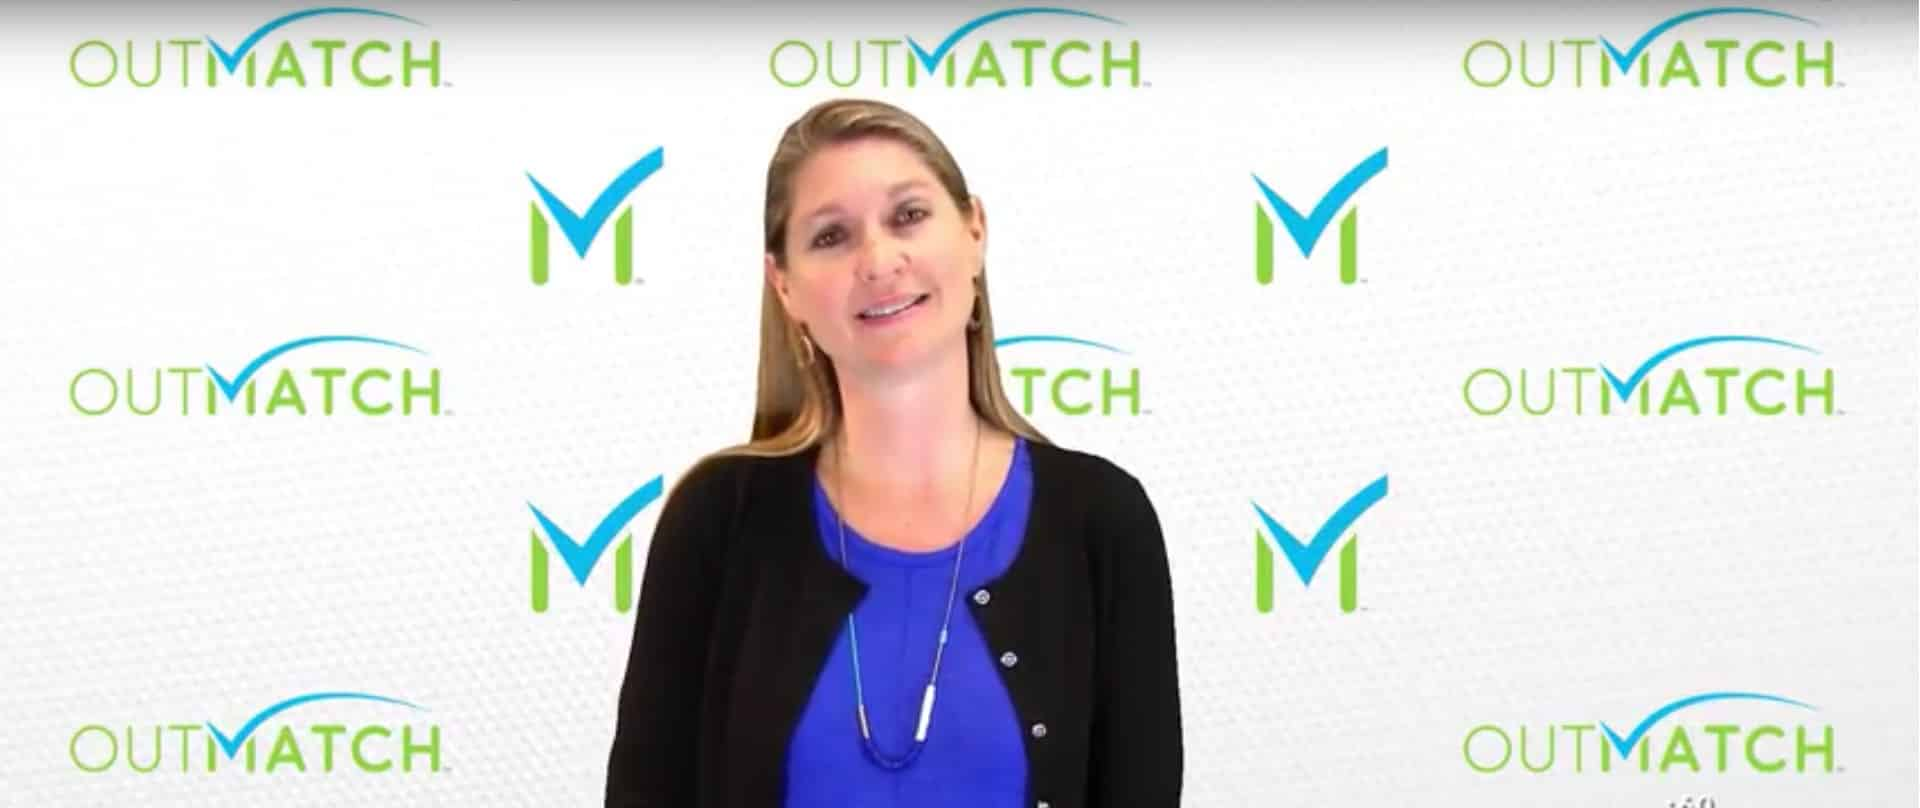 OutMatch Minute: How To Read The Range Chart